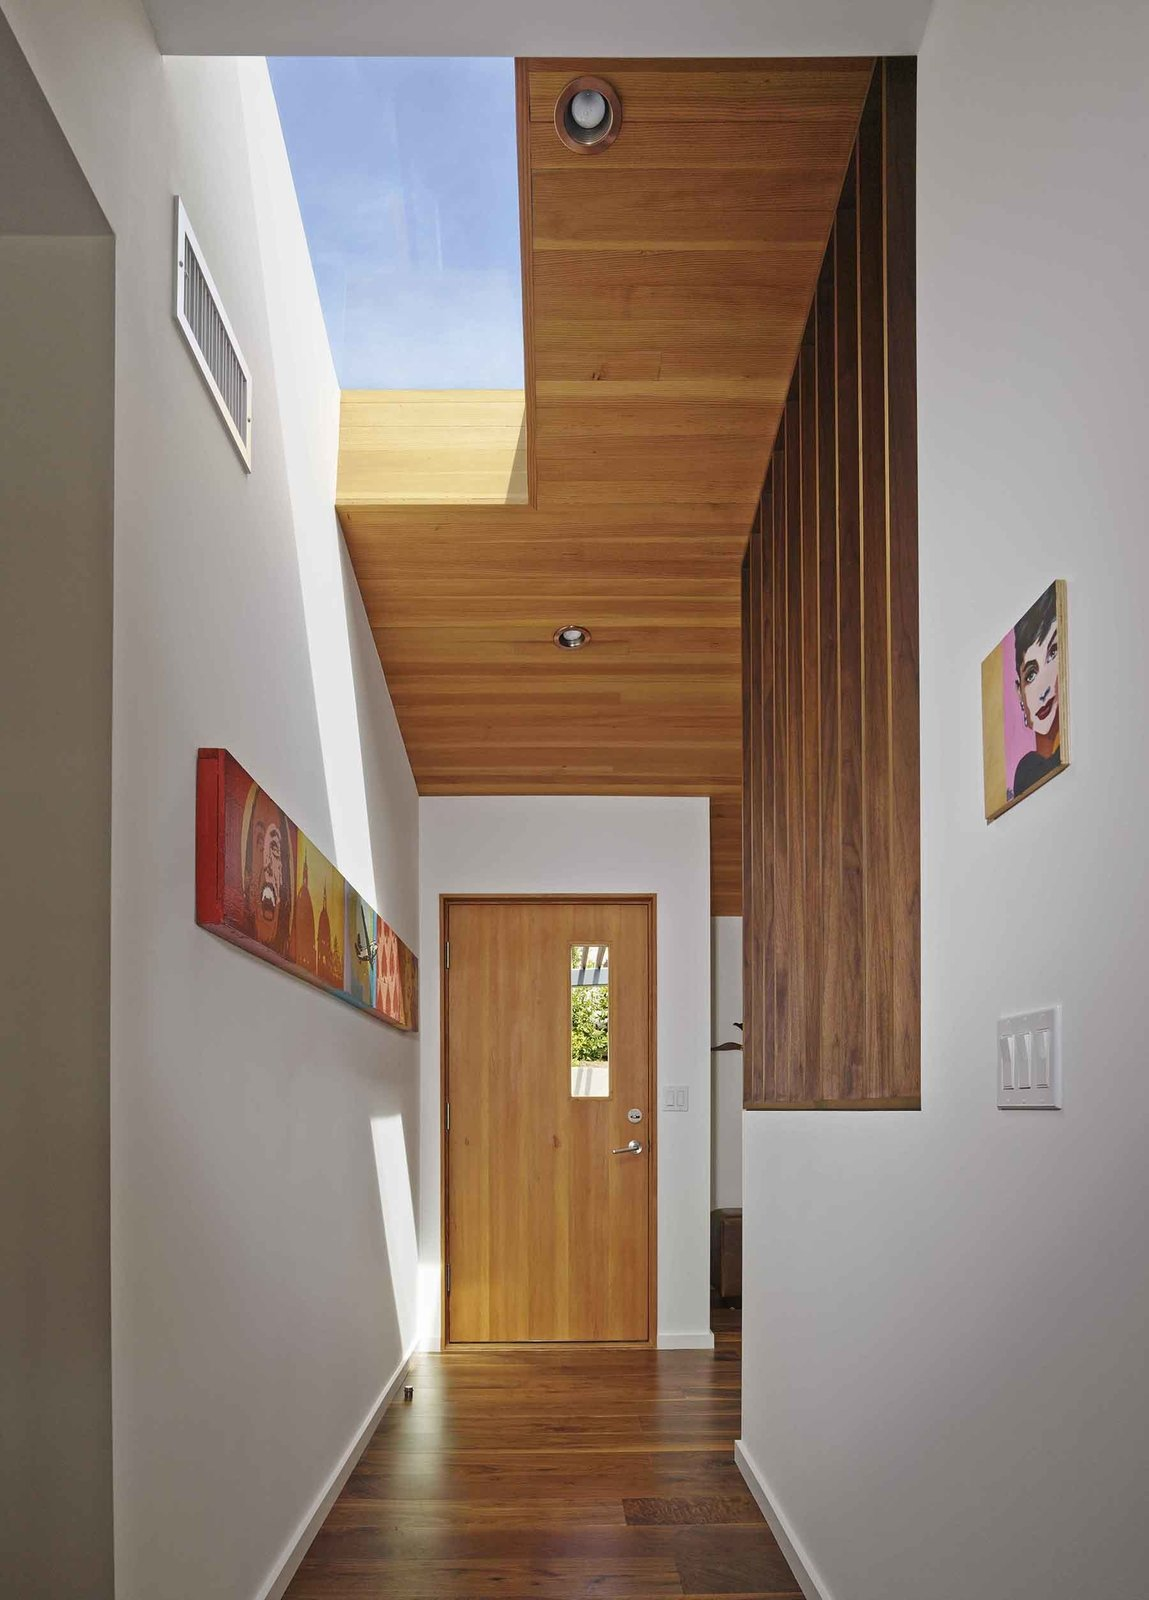 Striated wood paneling and new skylights give dimension to the renovated entryway.